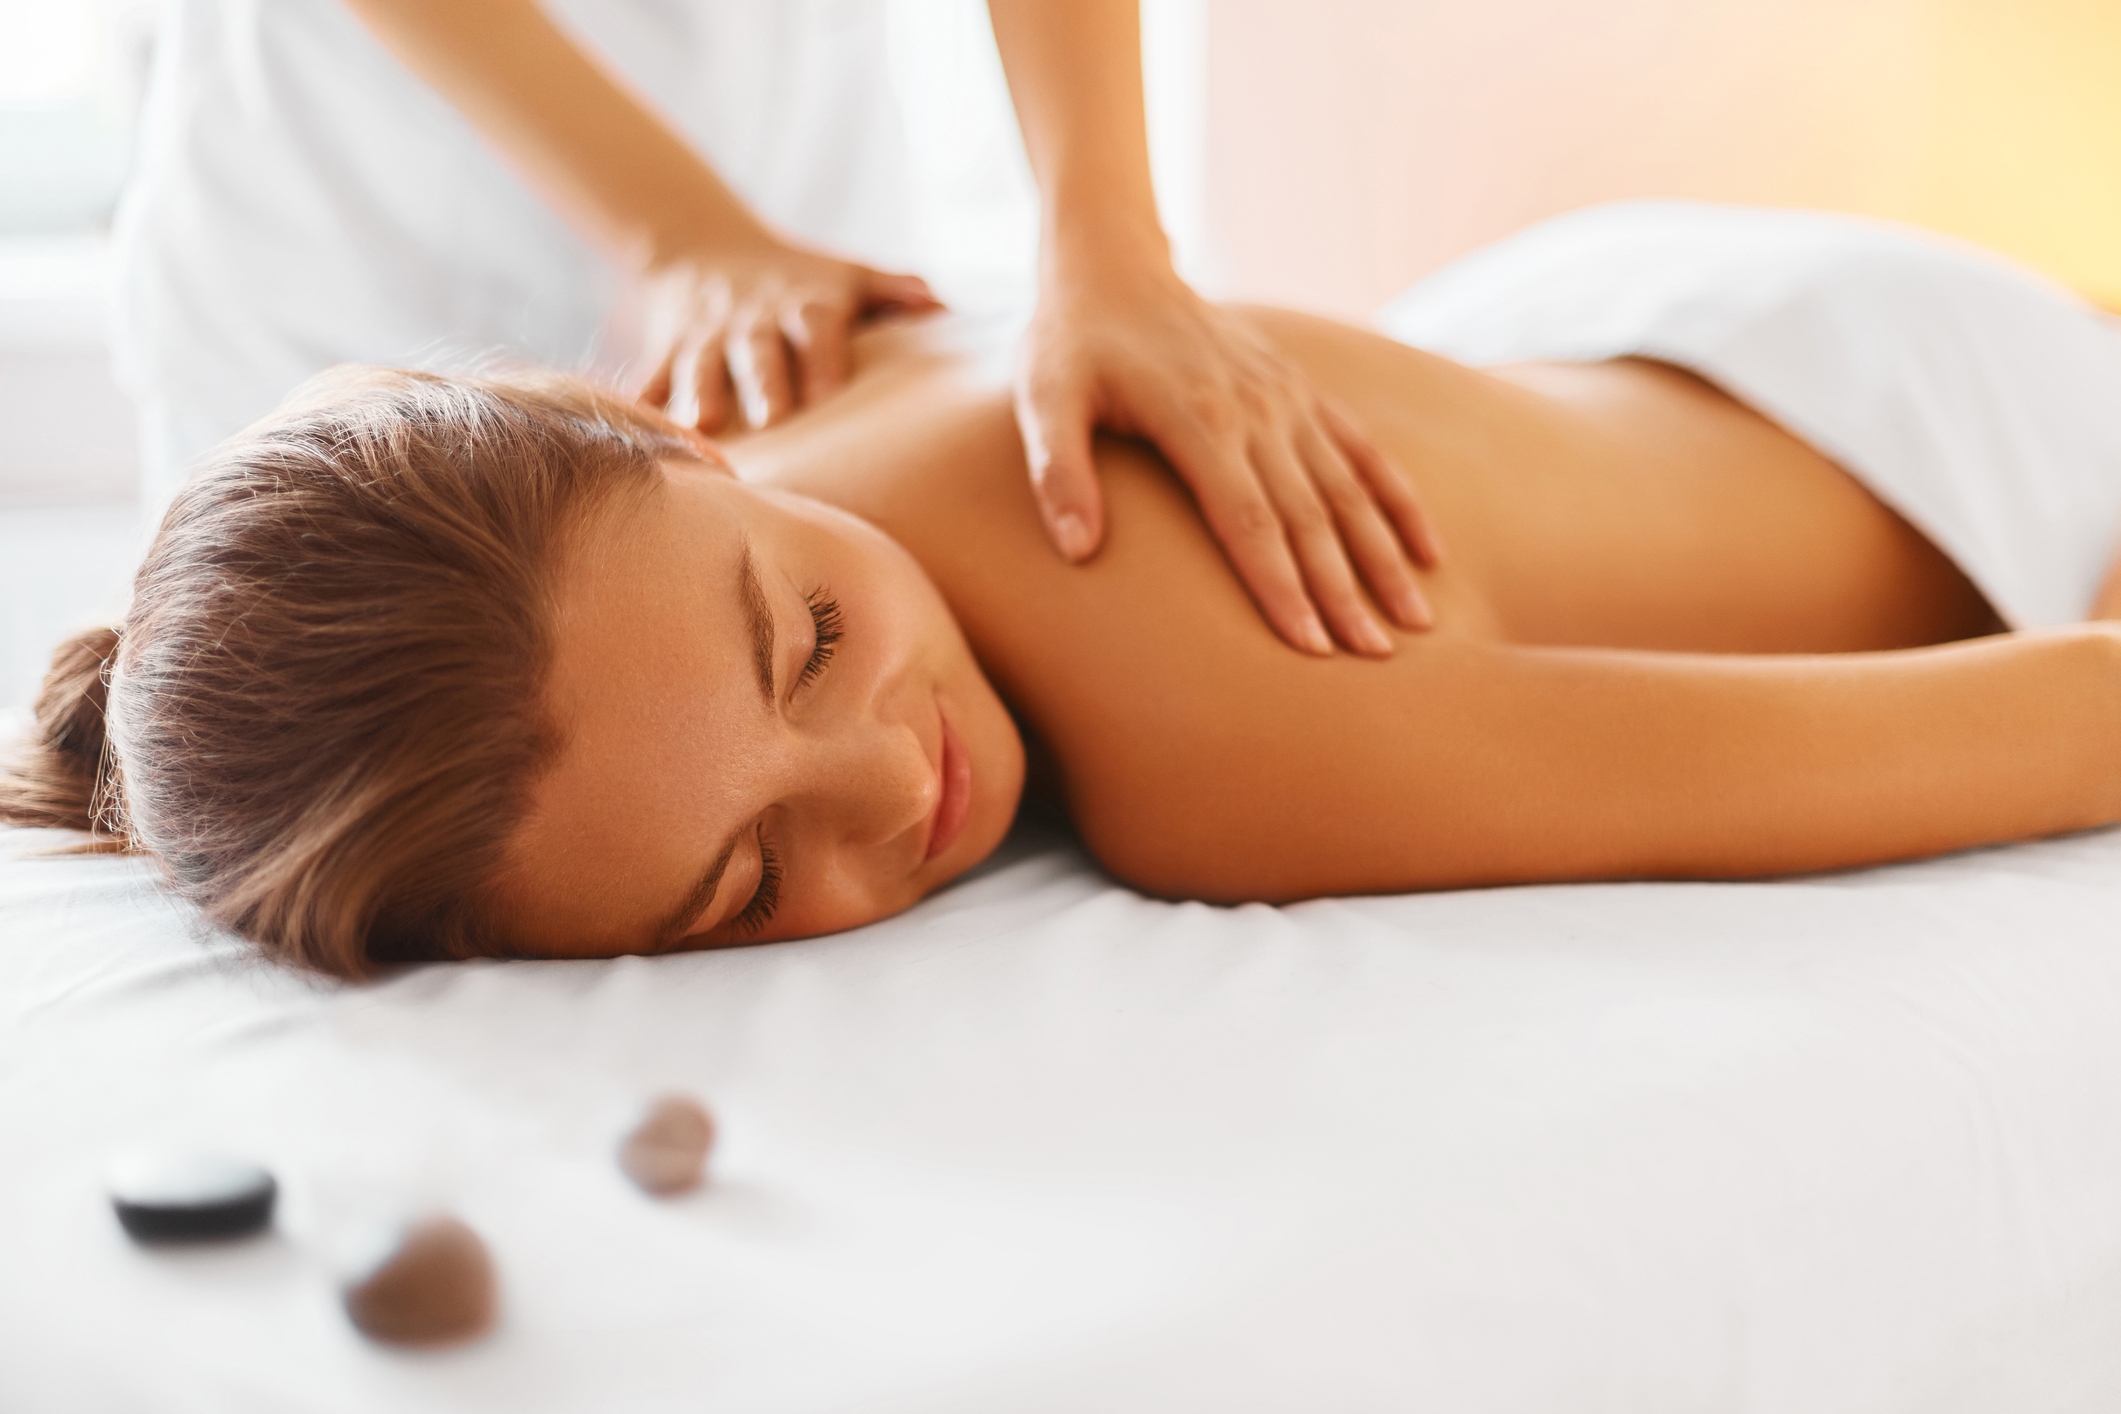 At The Tiny Spa, we believe in the power to transform your mind, body and skin through therapeutic touch, advanced science based conscious skincare, and positivity. Our therapists are here to guide you towards wellness, radiance and happiness. Our treatments are focused on providing high touch modalities to help you recover from the negative effects of stress, all while using high tech molecular skincare that combines the wisdom of nature from plant botanicals with the intelligence of science; all free from parabens, mineral oils, silicones, artificial colors, animal derivatives, and Mit.We help you become an embodiment of positivity and happiness by being the example and inspiring your own confidence through feeling great and revealing radiant skin. It is also our goal to educate you and provide you with the latest research on wellness, skincare and how to live your best self. Ultimately we are what we eat, what we put on our skin and what we project in this world. Great skin starts from within, so eating a full balanced nutrient-dense diet is absolutely essential for healthy skin.Creating a customized daily skincare ritual with advanced products and being consistent, goes hand in hand with a healthy diet to reveal healthy radiant skin. And finally nothing speaks volumes like being happy. When you are happy it radiates from within to your skin, everyone takes notice of your glow and instantly becomes happier because you are! Let's make the world a happier, healthier and more radiant being by visiting The Tiny Spa today! -